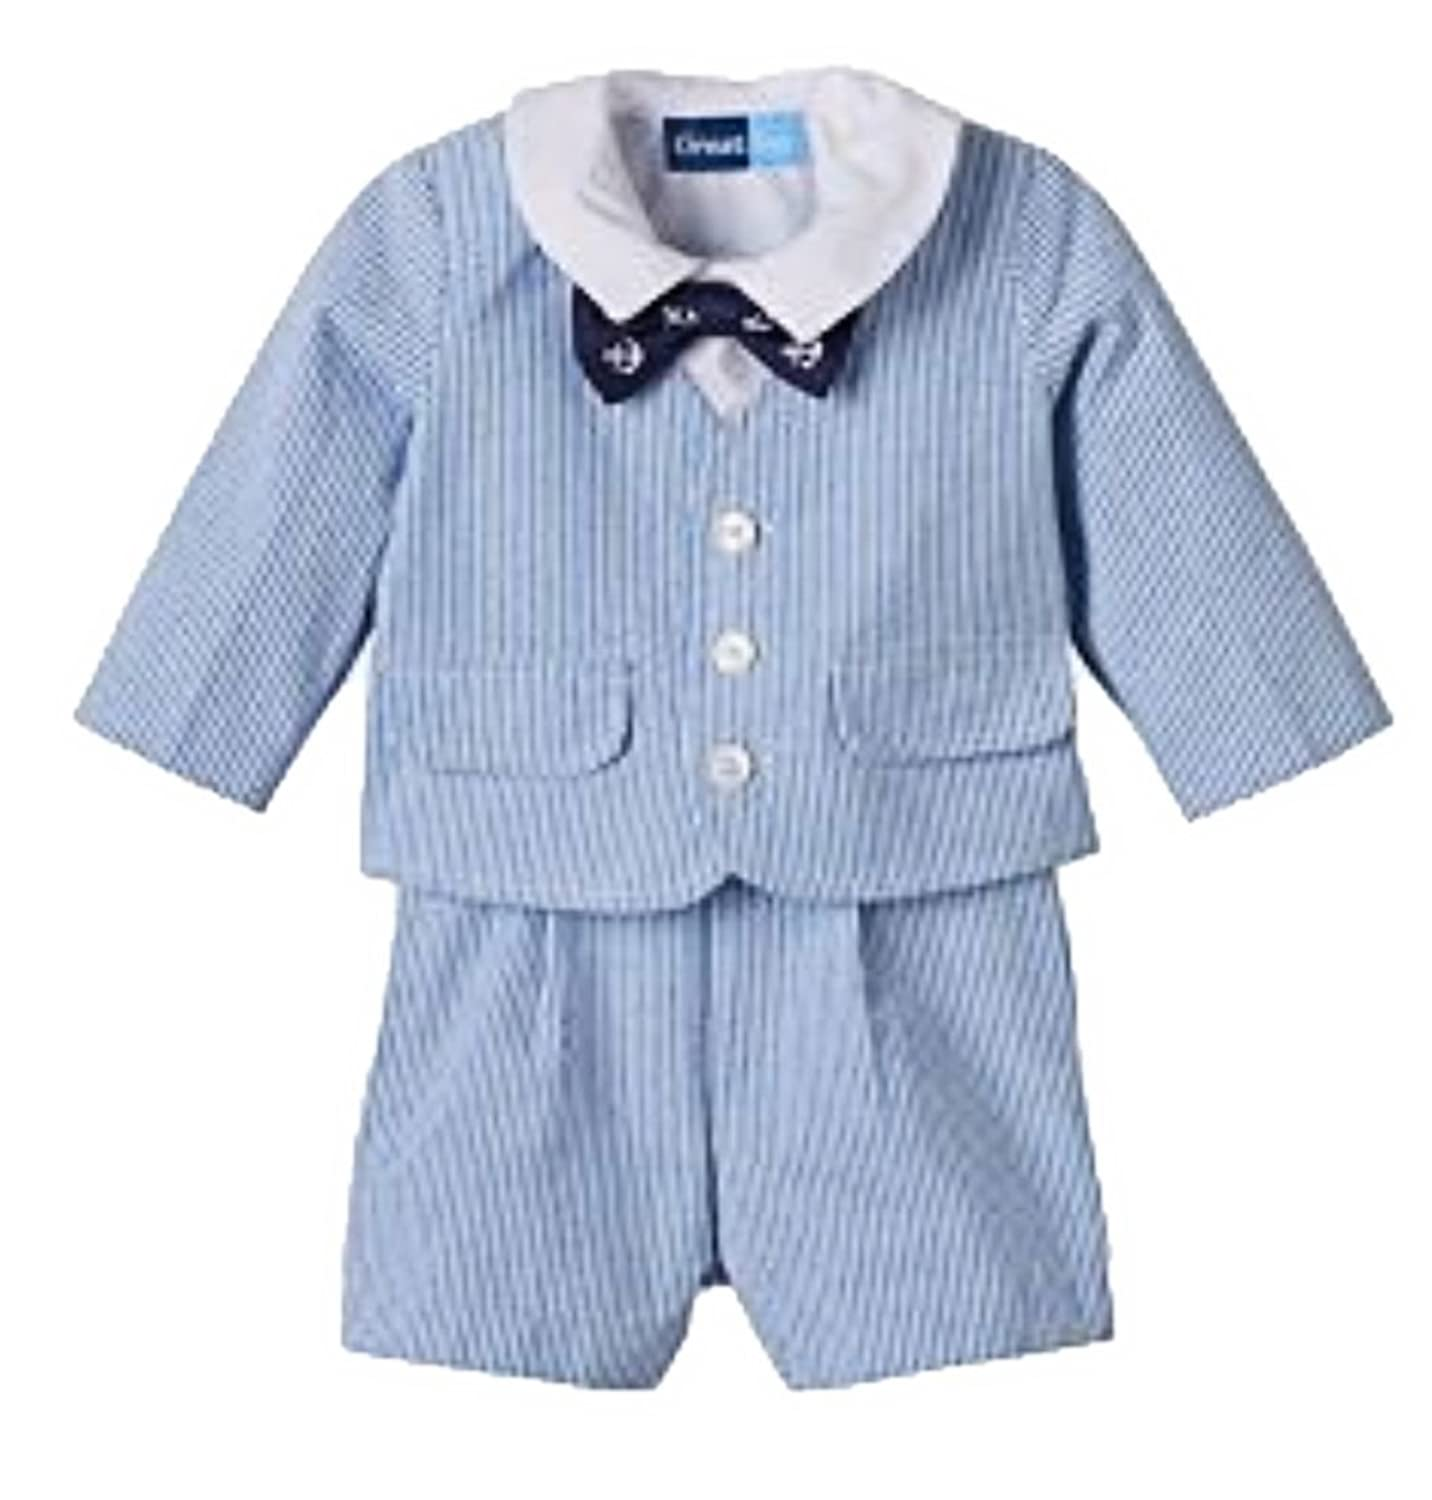 1930s Childrens Fashion: Girls, Boys, Toddler, Baby Costumes Great Guy Boys 4-pc. Seersucker Suit Blue $44.99 AT vintagedancer.com